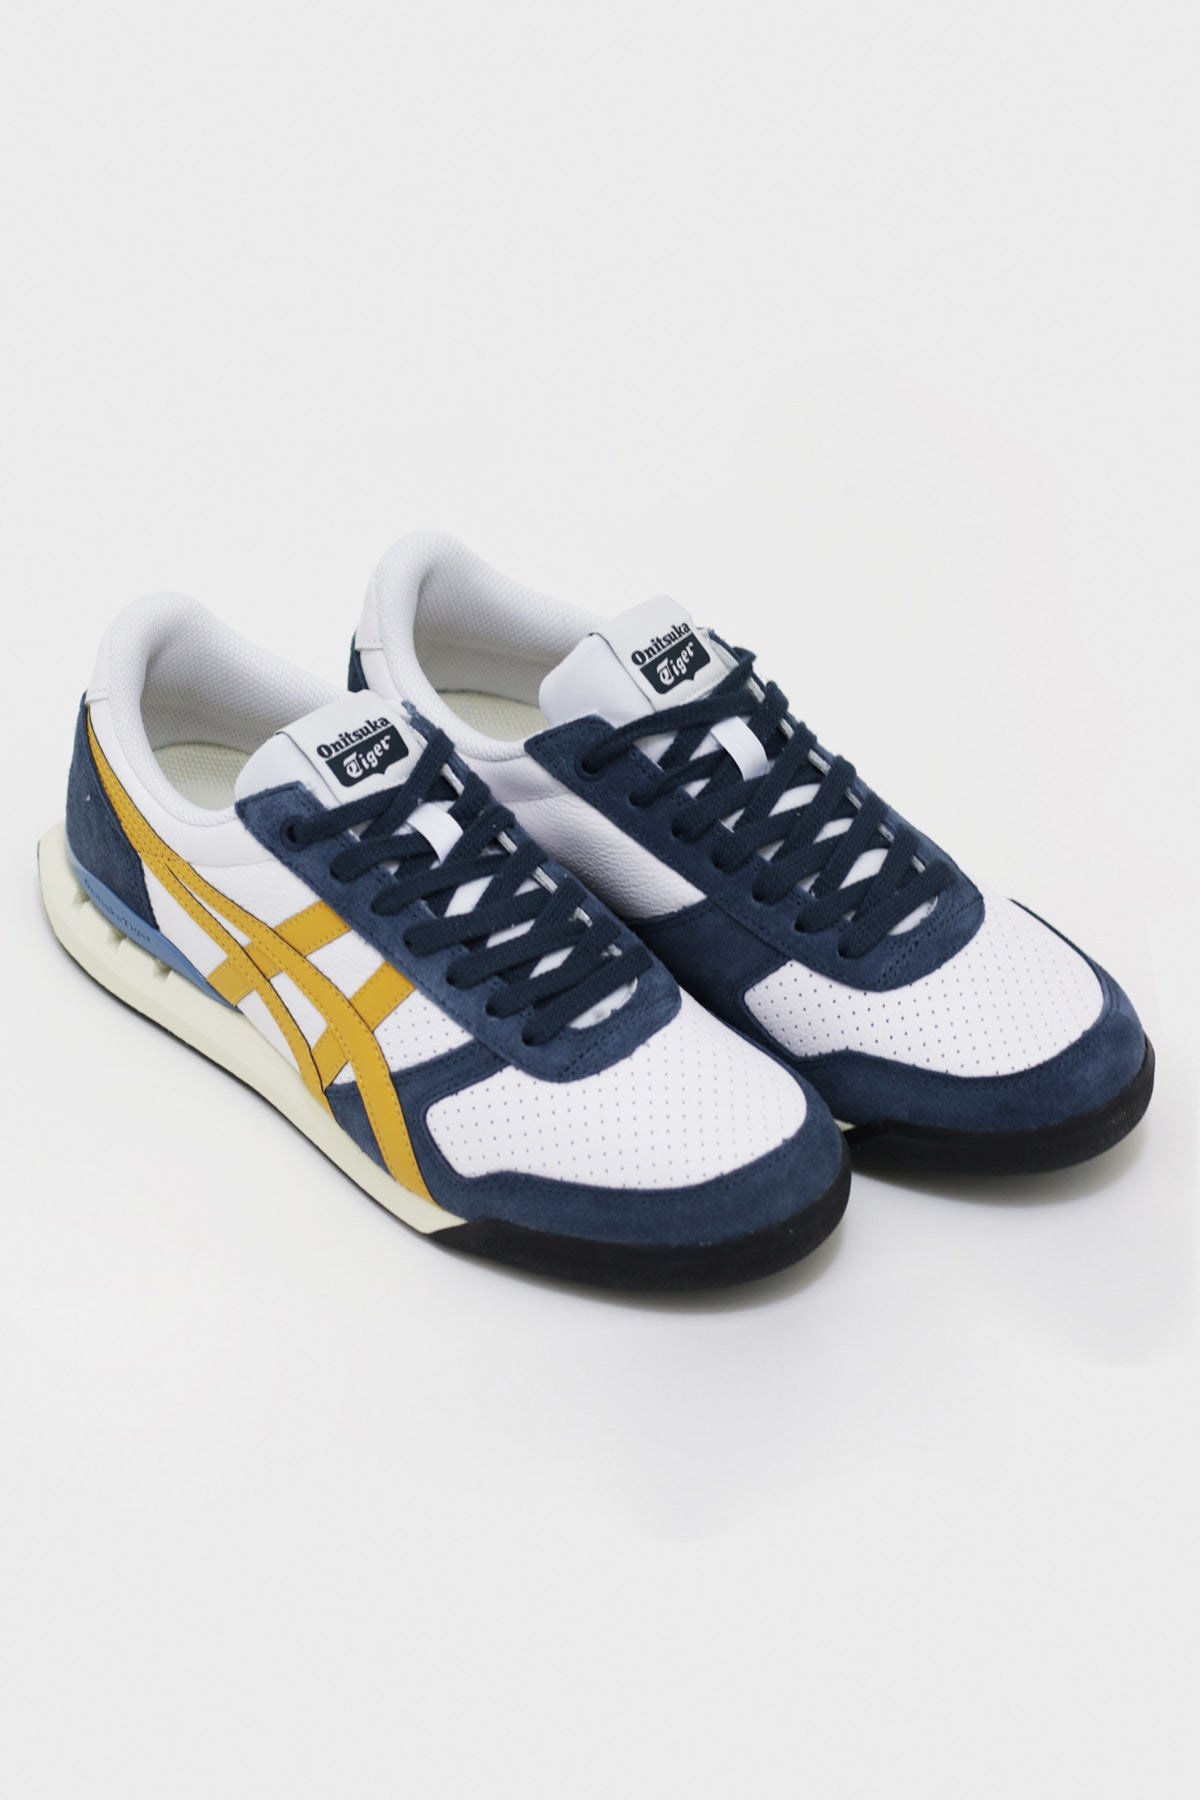 Onitsuka Tiger - Ultimate 81 EX - White/Golden Glow - Canoe Club